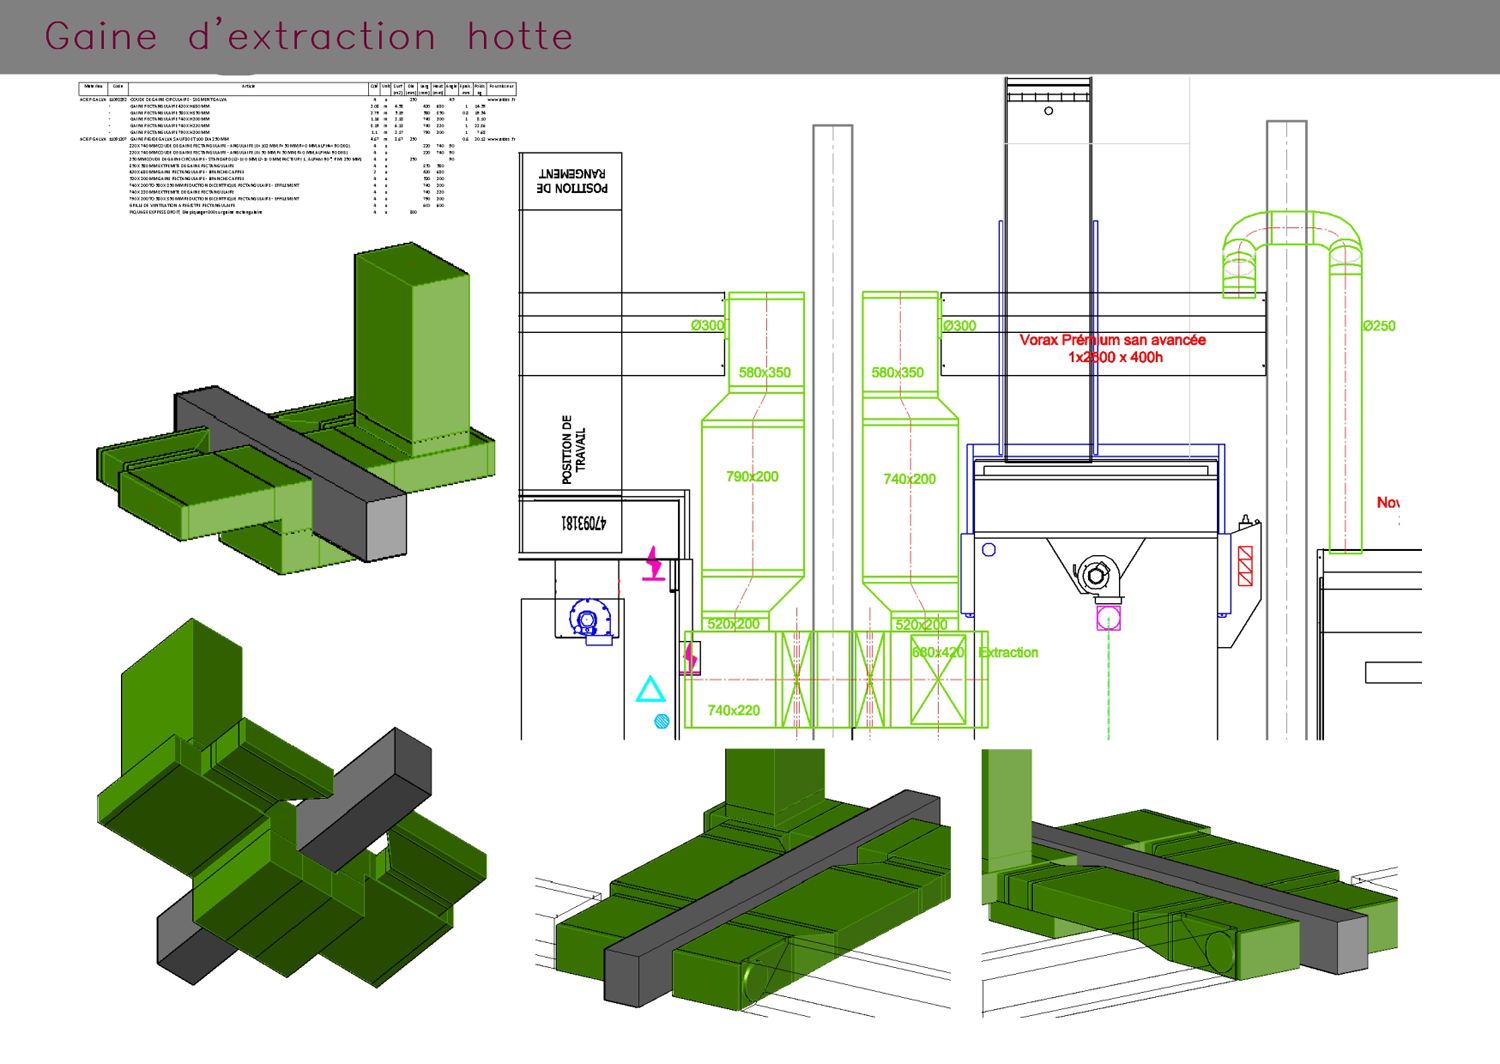 Gaine d'extraction d'une hotte : plans et vues 3D